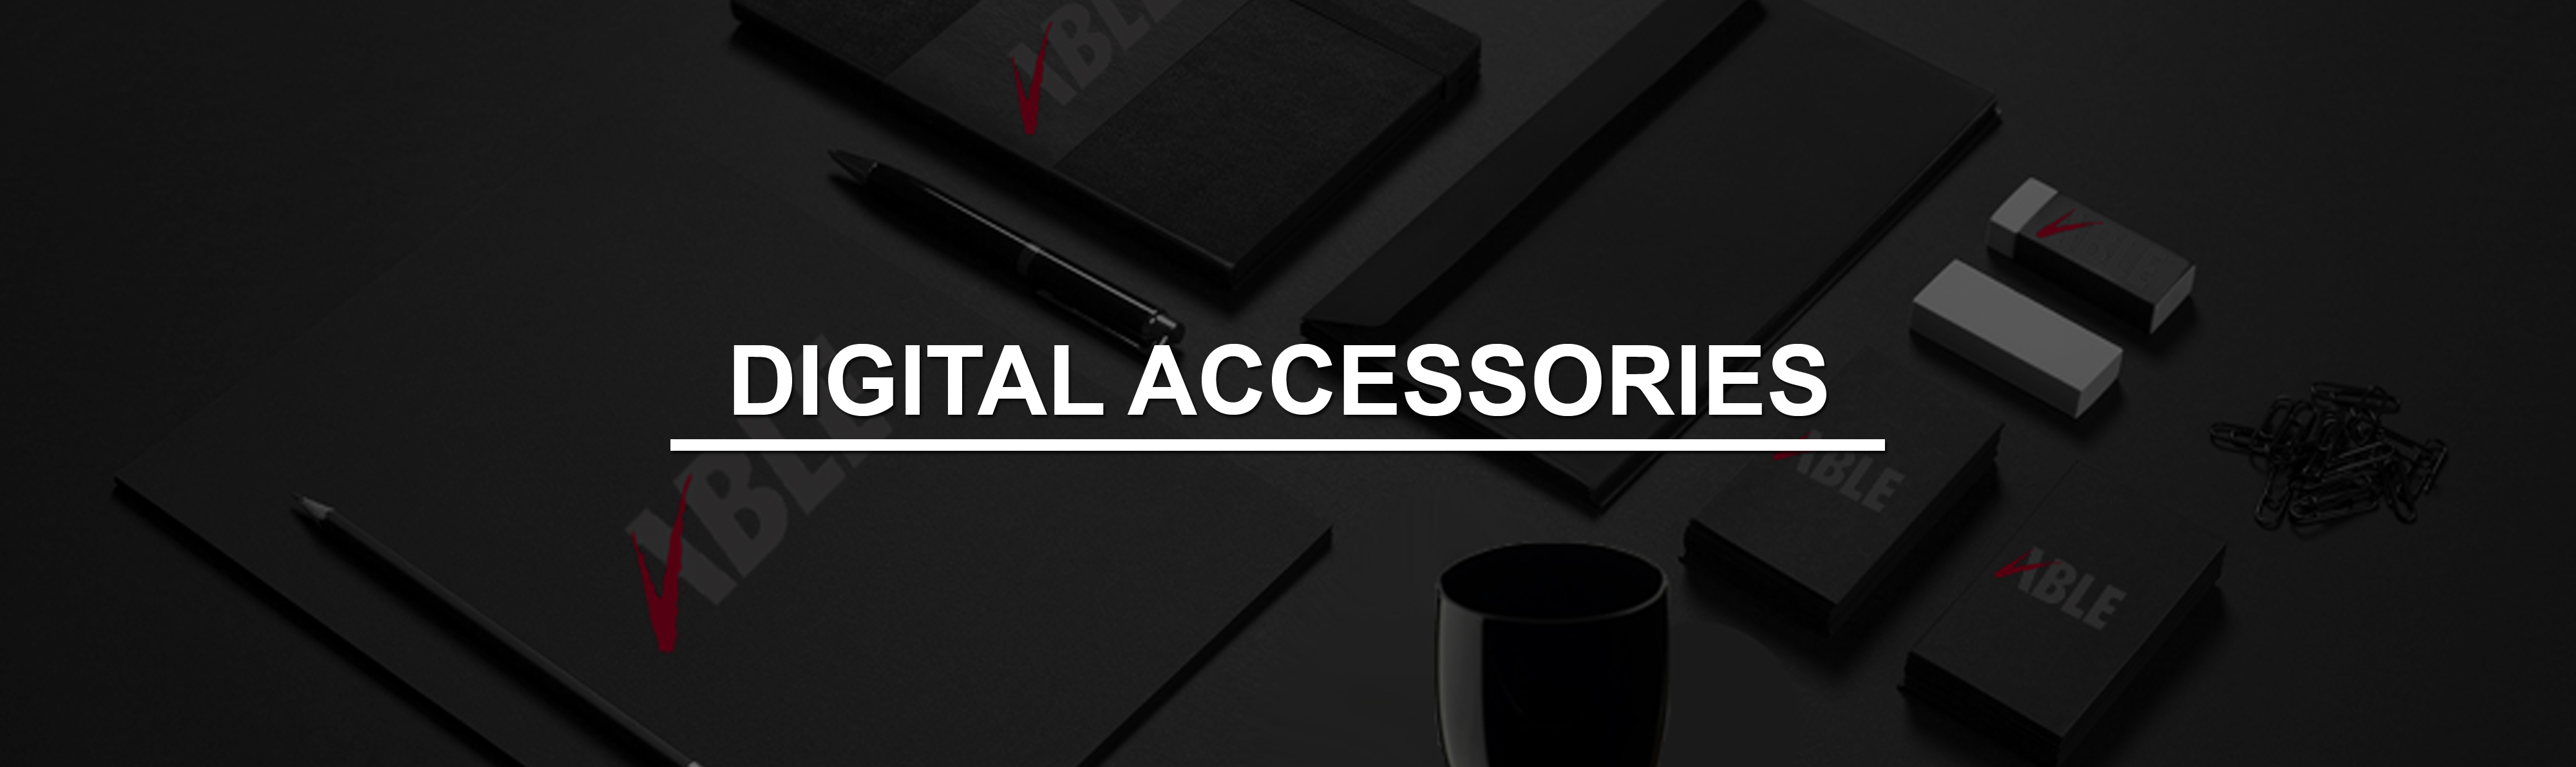 DIGITAL ACCESSORIES